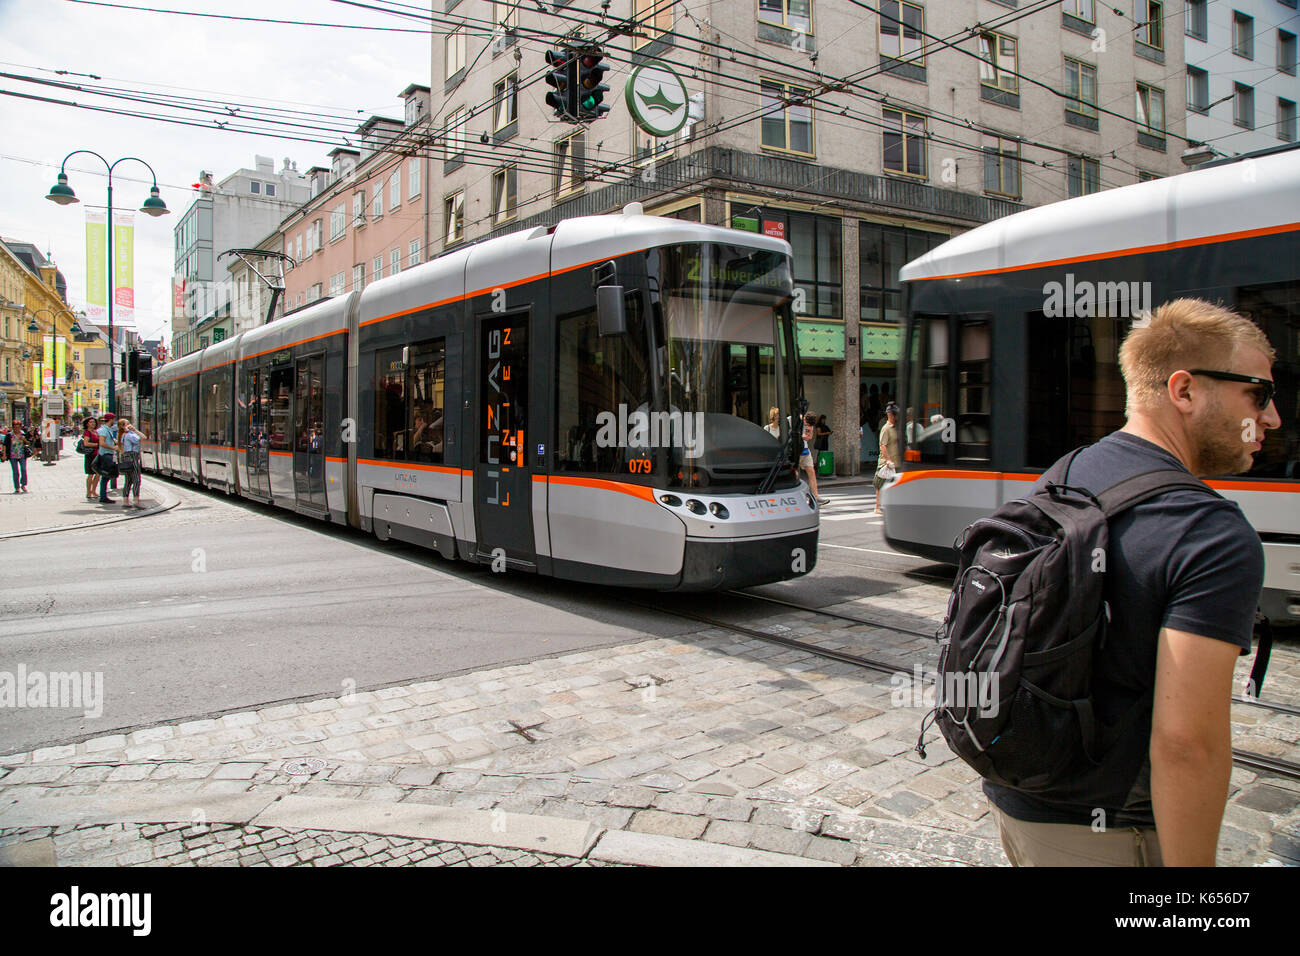 A tram passes through Linz, Czech Republic - Stock Image